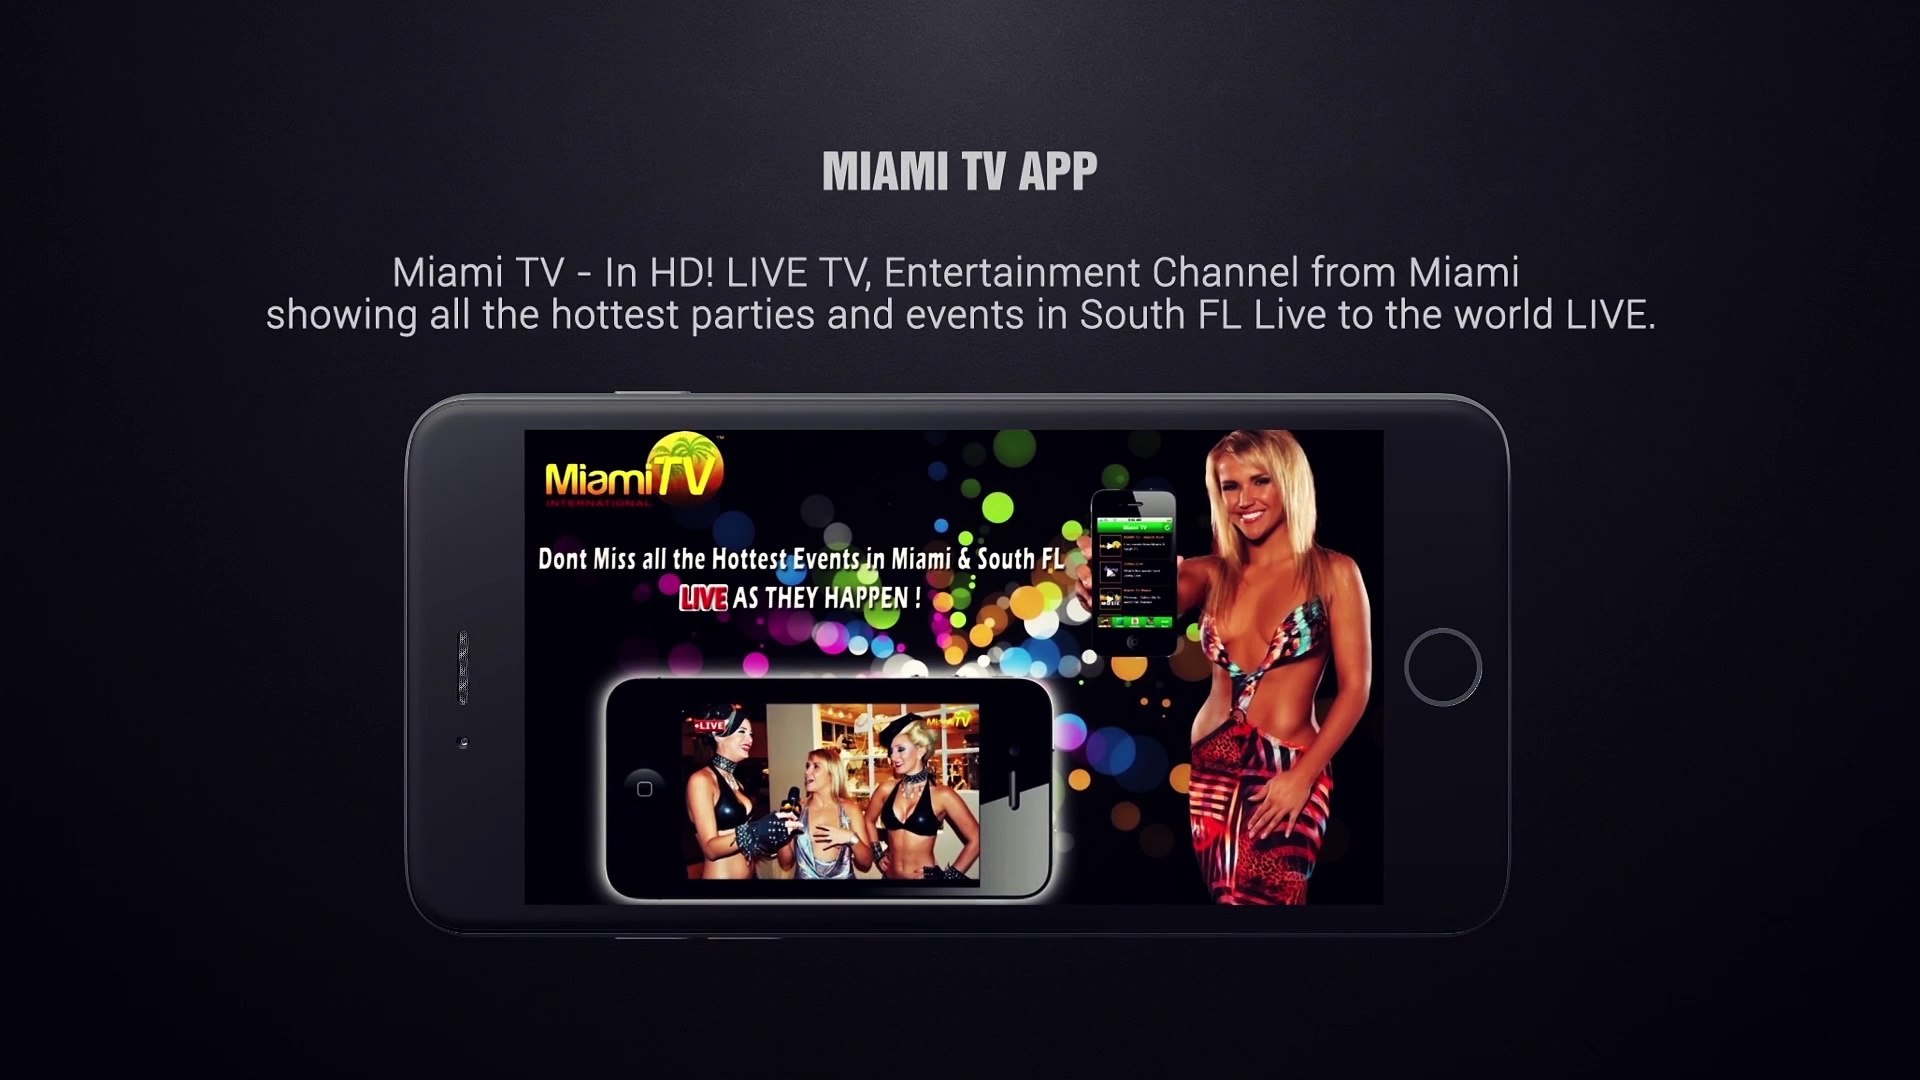 Miami TV Free App - Download for Live shows